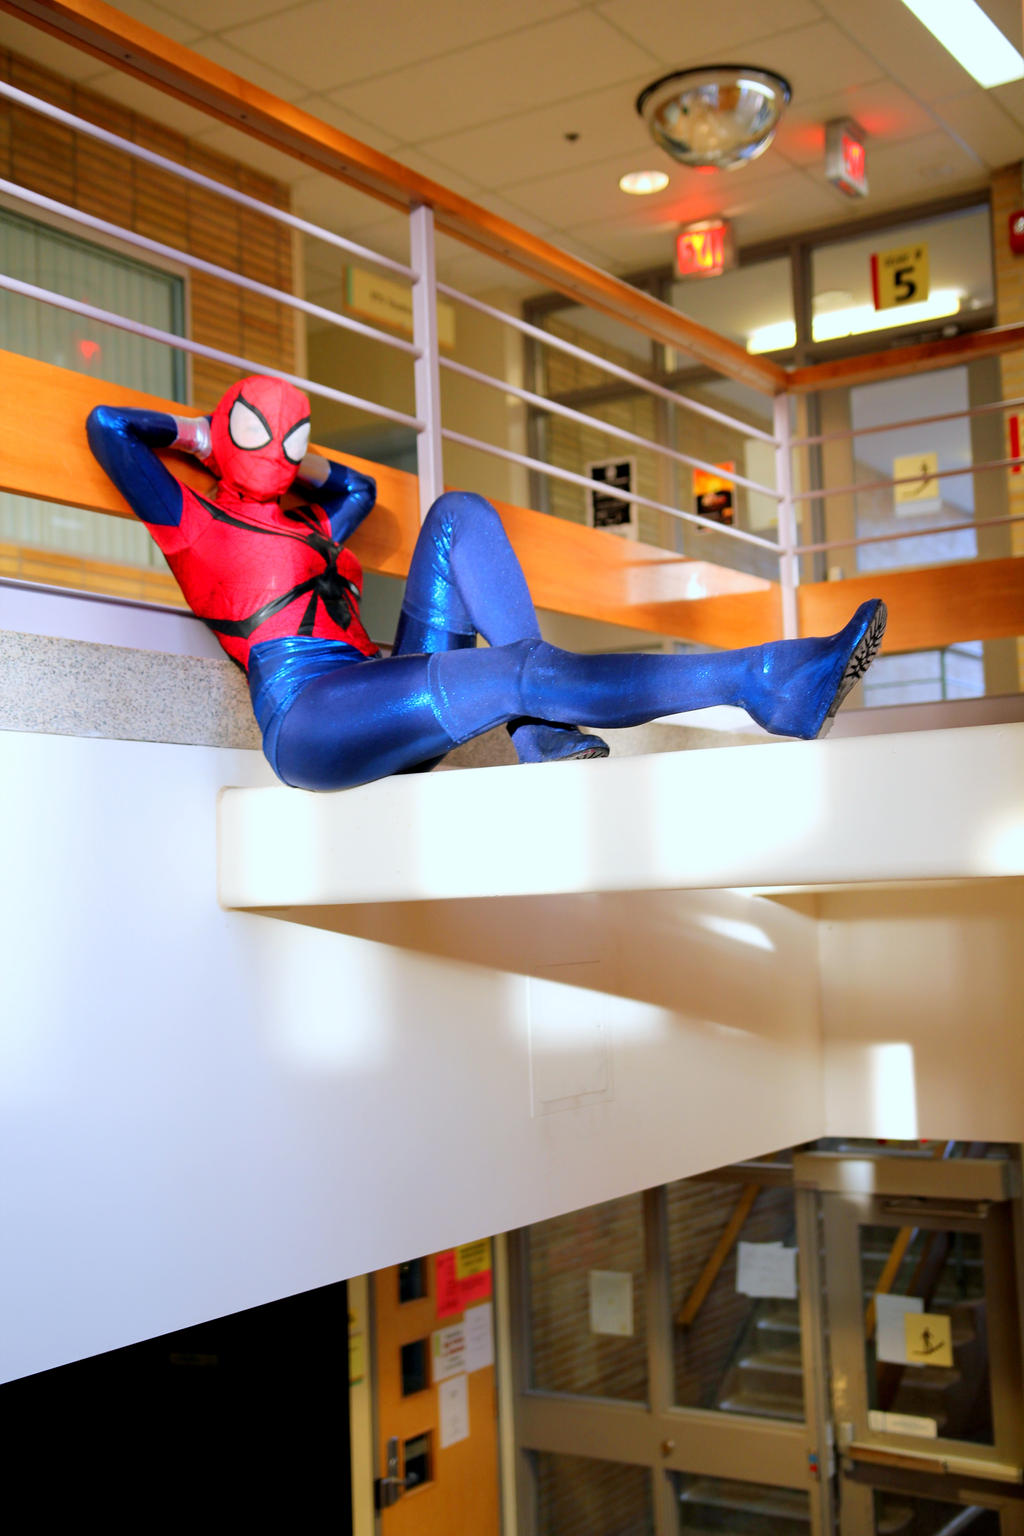 Spider girl lounging in Degrassi